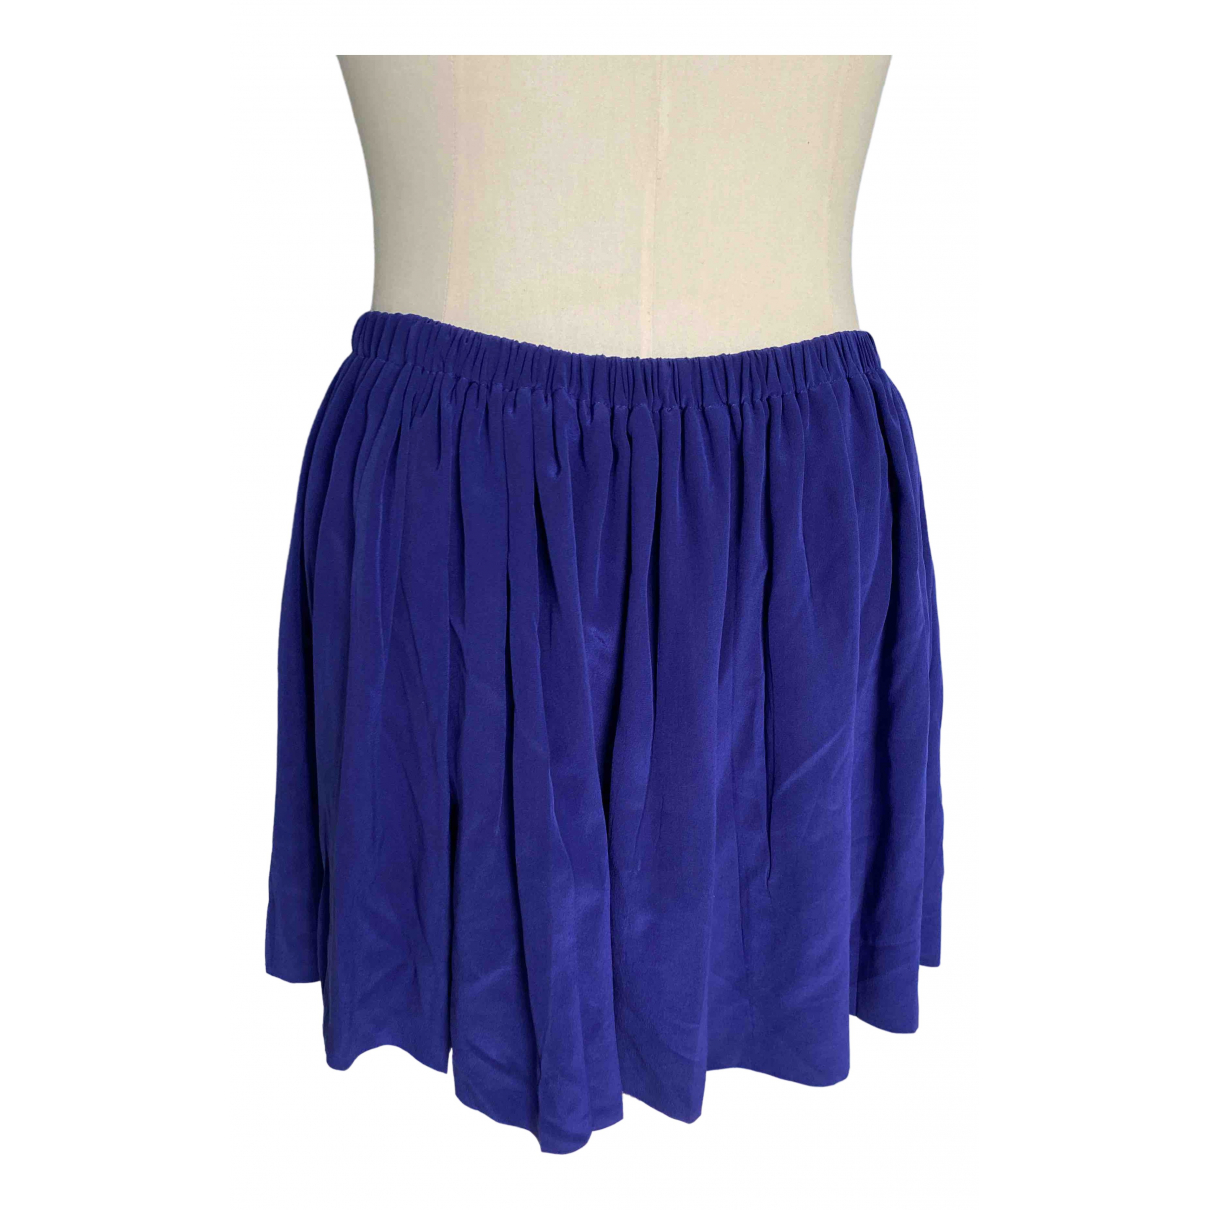 Miu Miu \N Purple Silk skirt for Women 40 IT